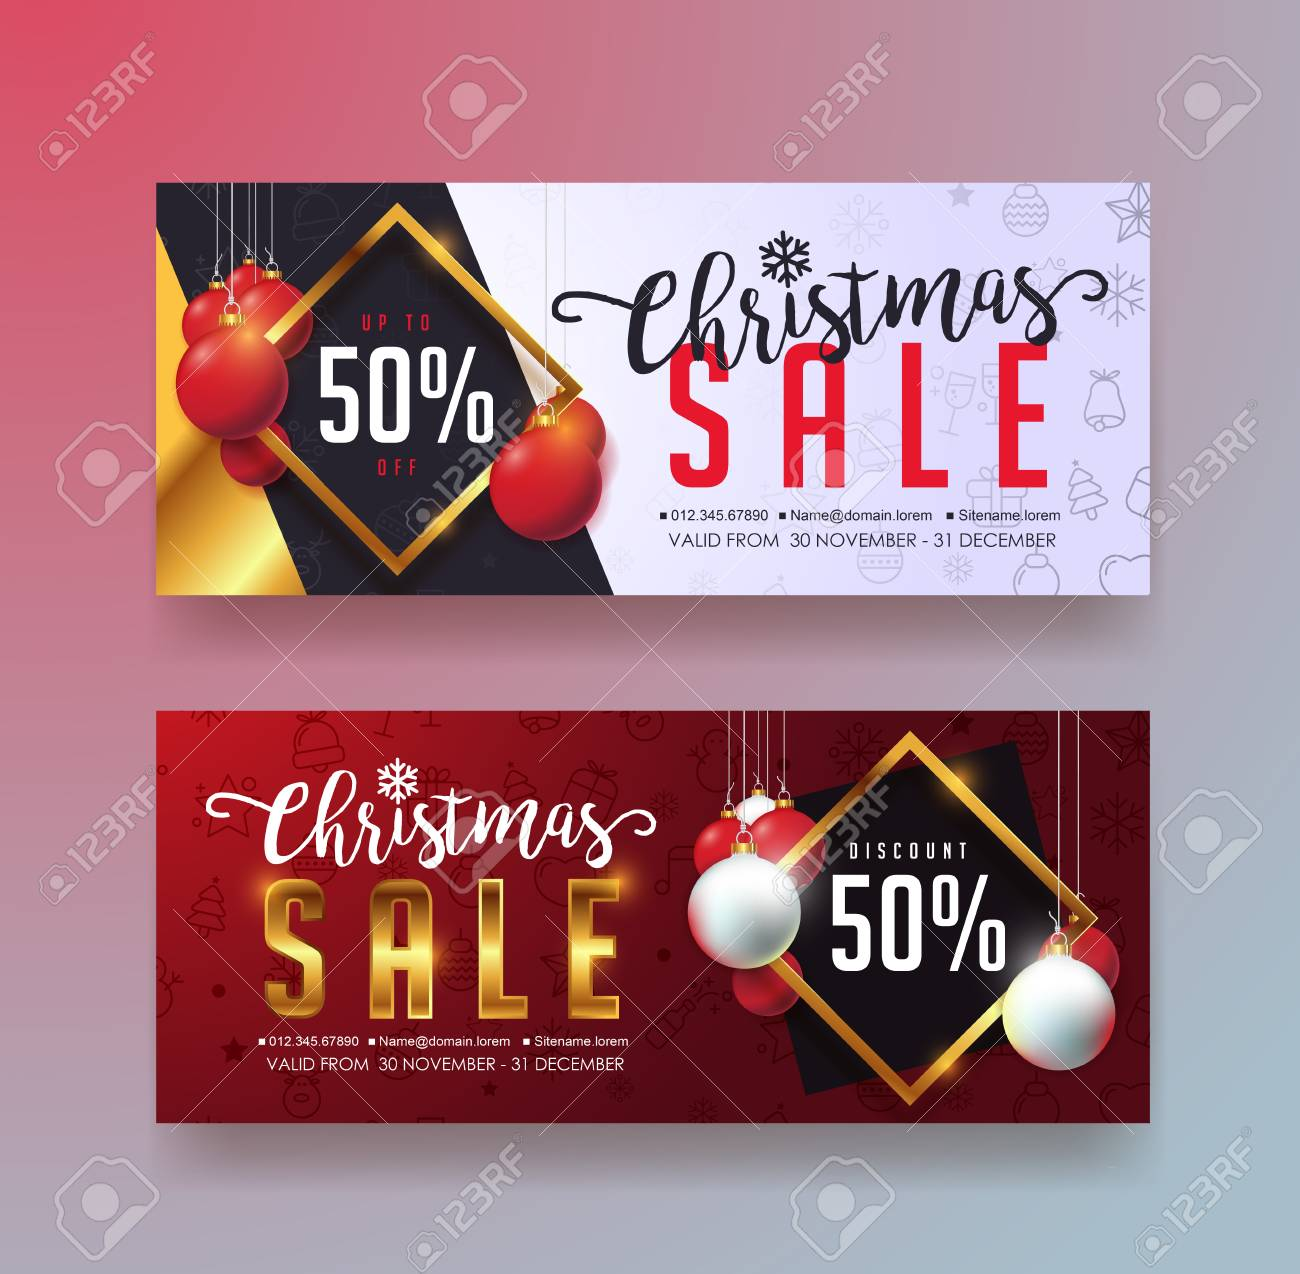 christmas sale banner template gift card discount voucher coupon